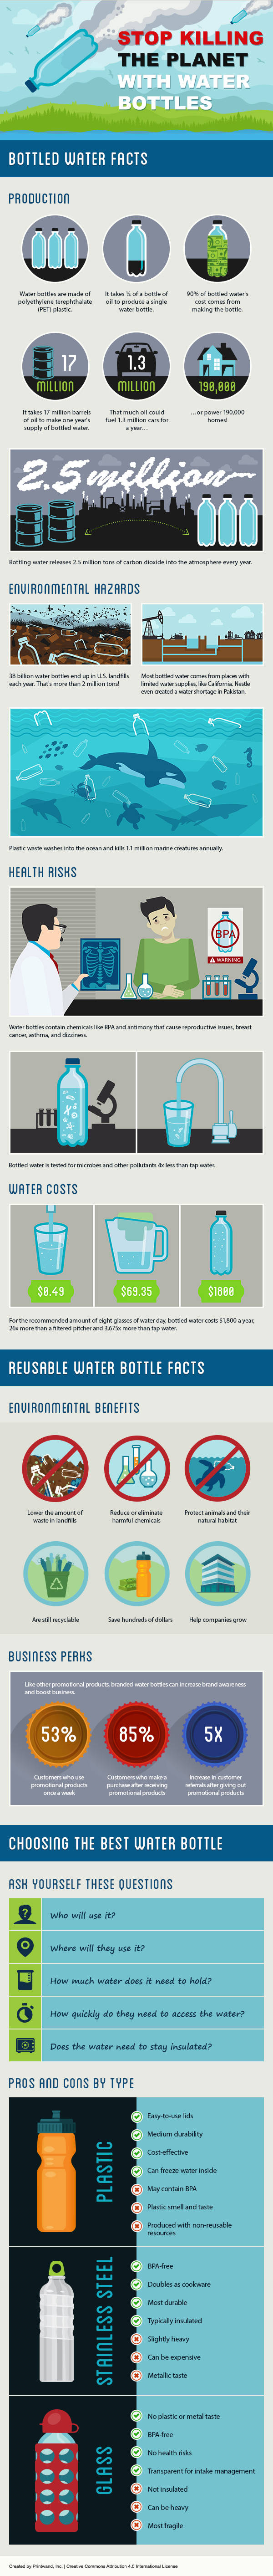 plastic water bottle pollution infographic facts environmental effects